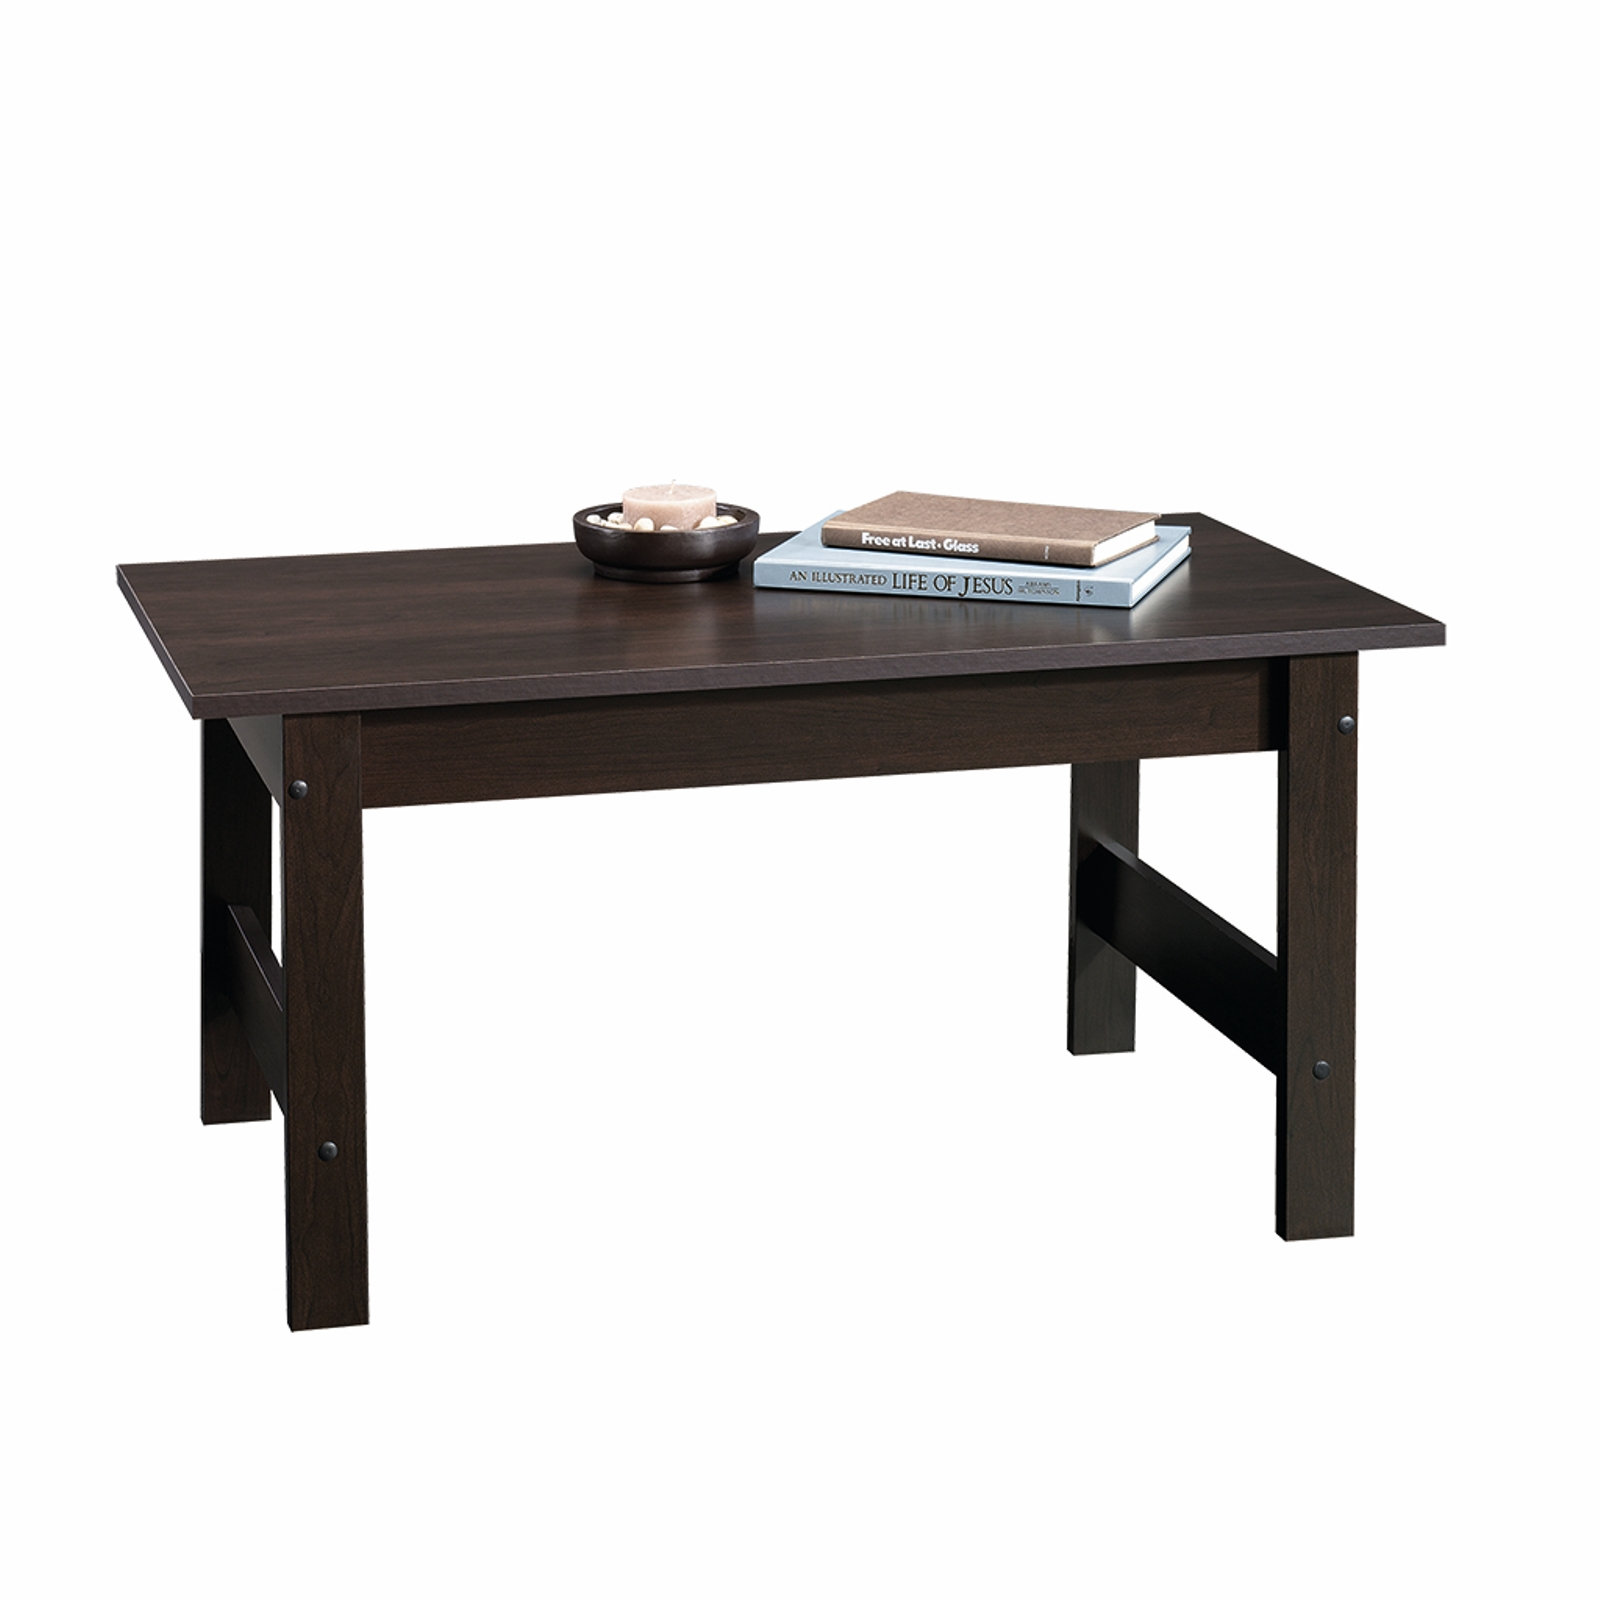 sauder beginnings coffee table cinnamon cherry finish spin prod end ethan allen buffet furniture inch high night stand log dining room tables unfinished wood boston wooden crate